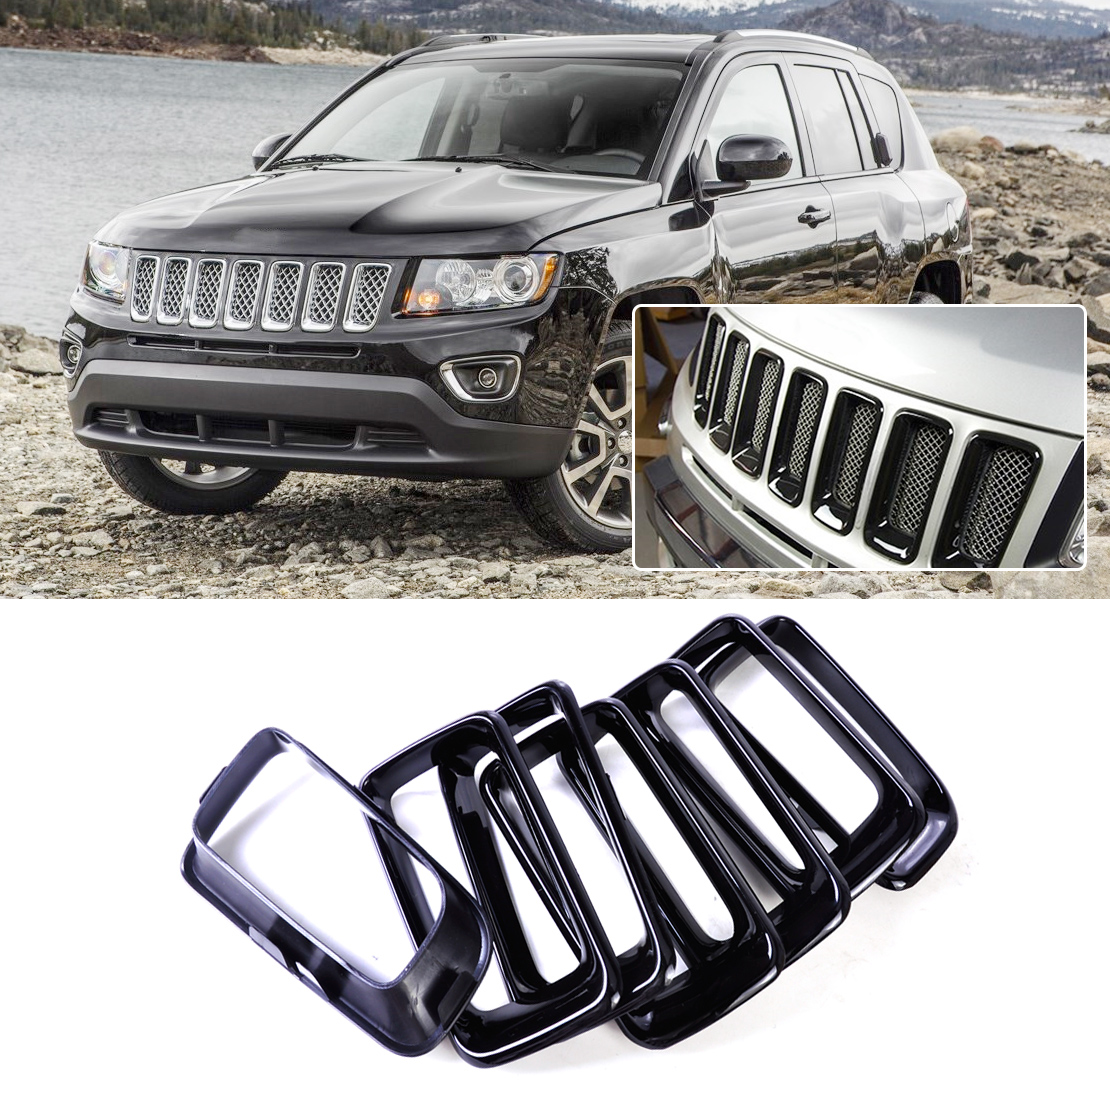 CITALL 7pcs ABS Front Grille Vent Hole Cover Trim Insert Frame Billet Vertical for Jeep Compass 2011 2012 2013 2014 2015 2016 abs chrome front grille around trim for ford s max smax 2007 2010 2011 2012